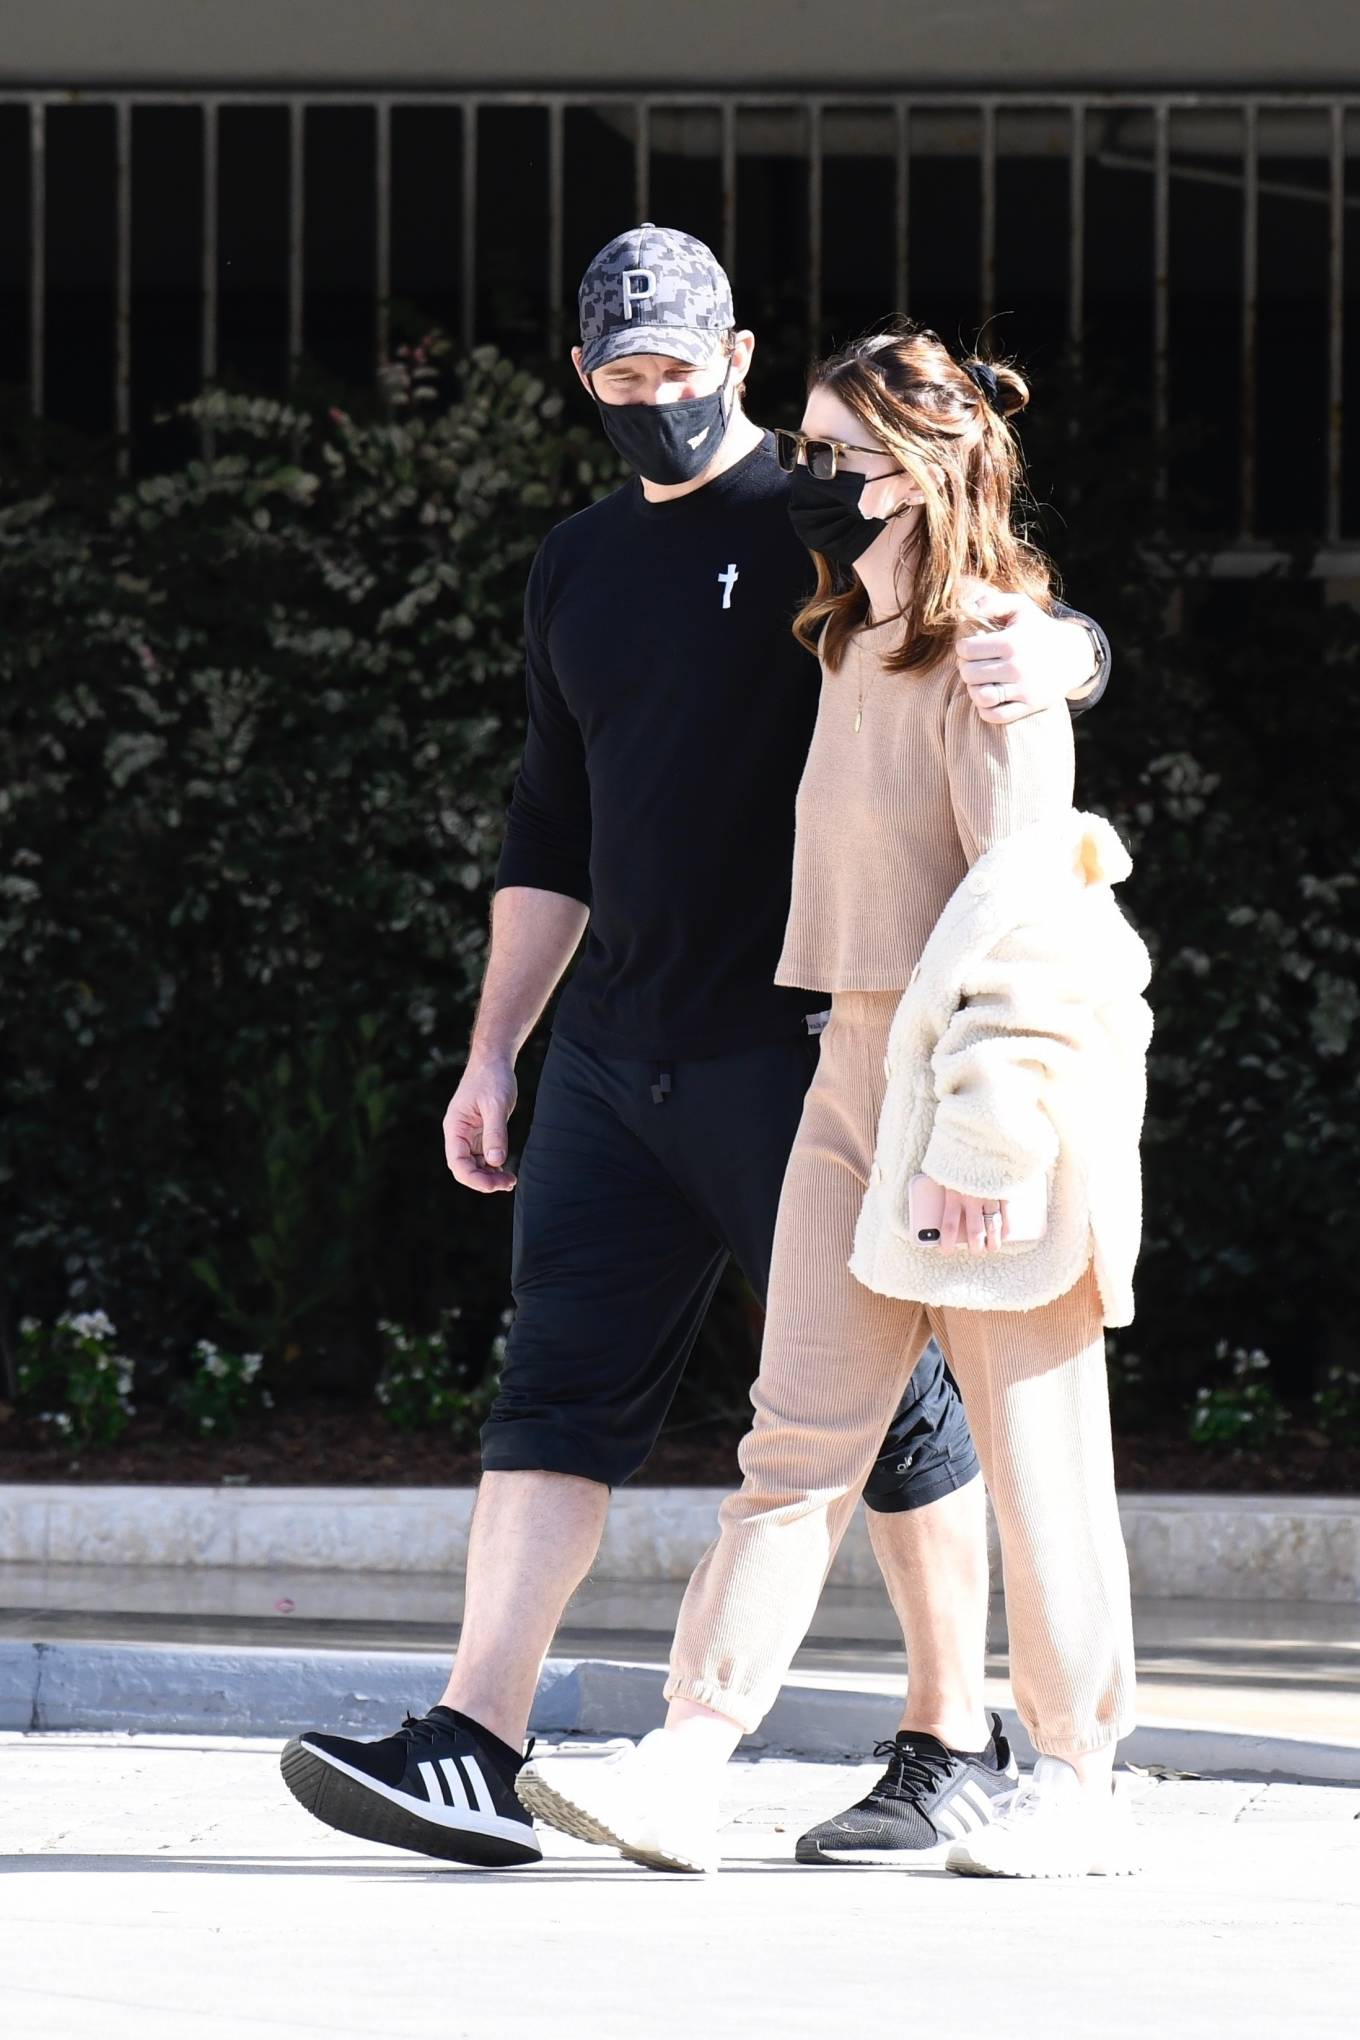 Chris Pratt and Katherine Schwarzenegger - Out for a walk in Brentwood